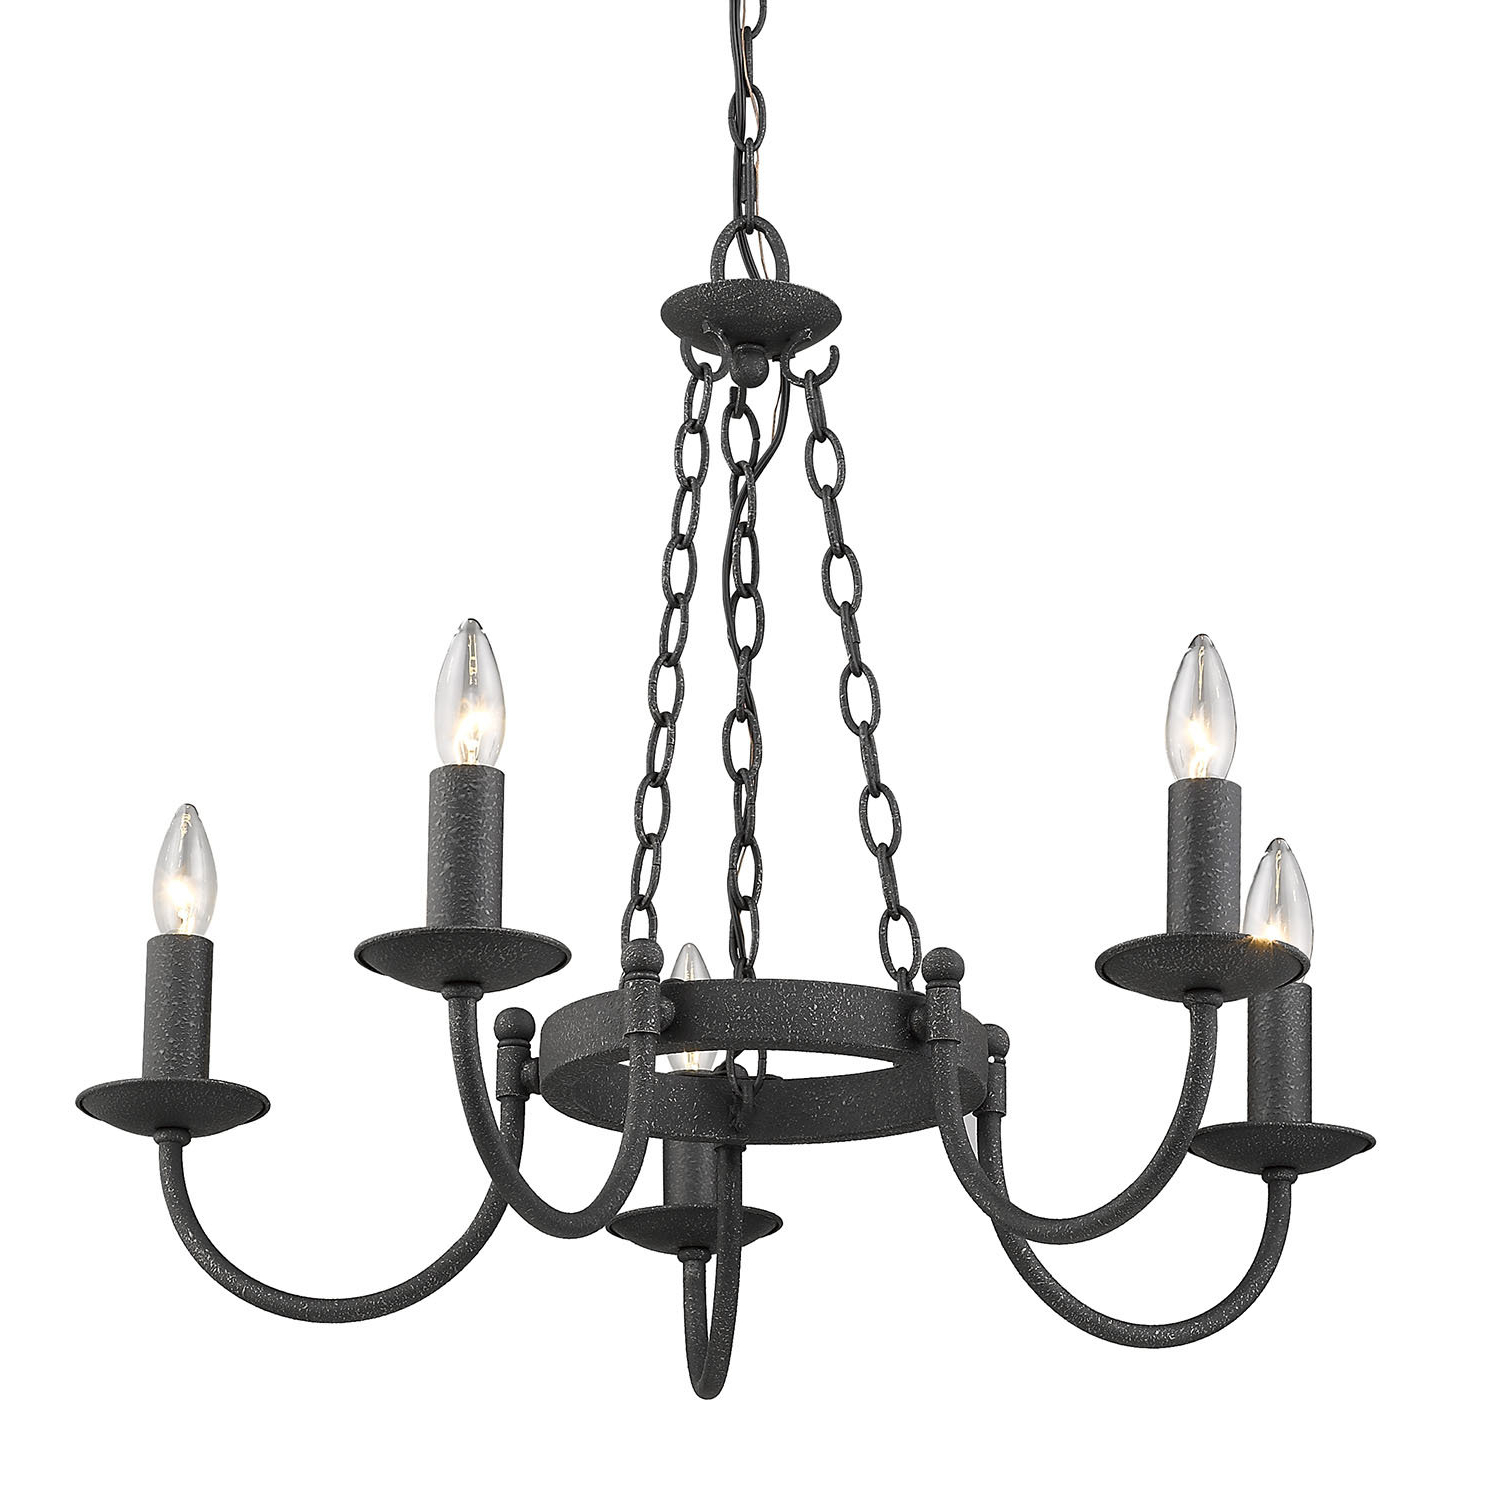 Latest Shaylee 5 Light Candle Style Chandeliers With Regard To Barcroft 5 Light Candle Style Chandelier (Gallery 15 of 20)